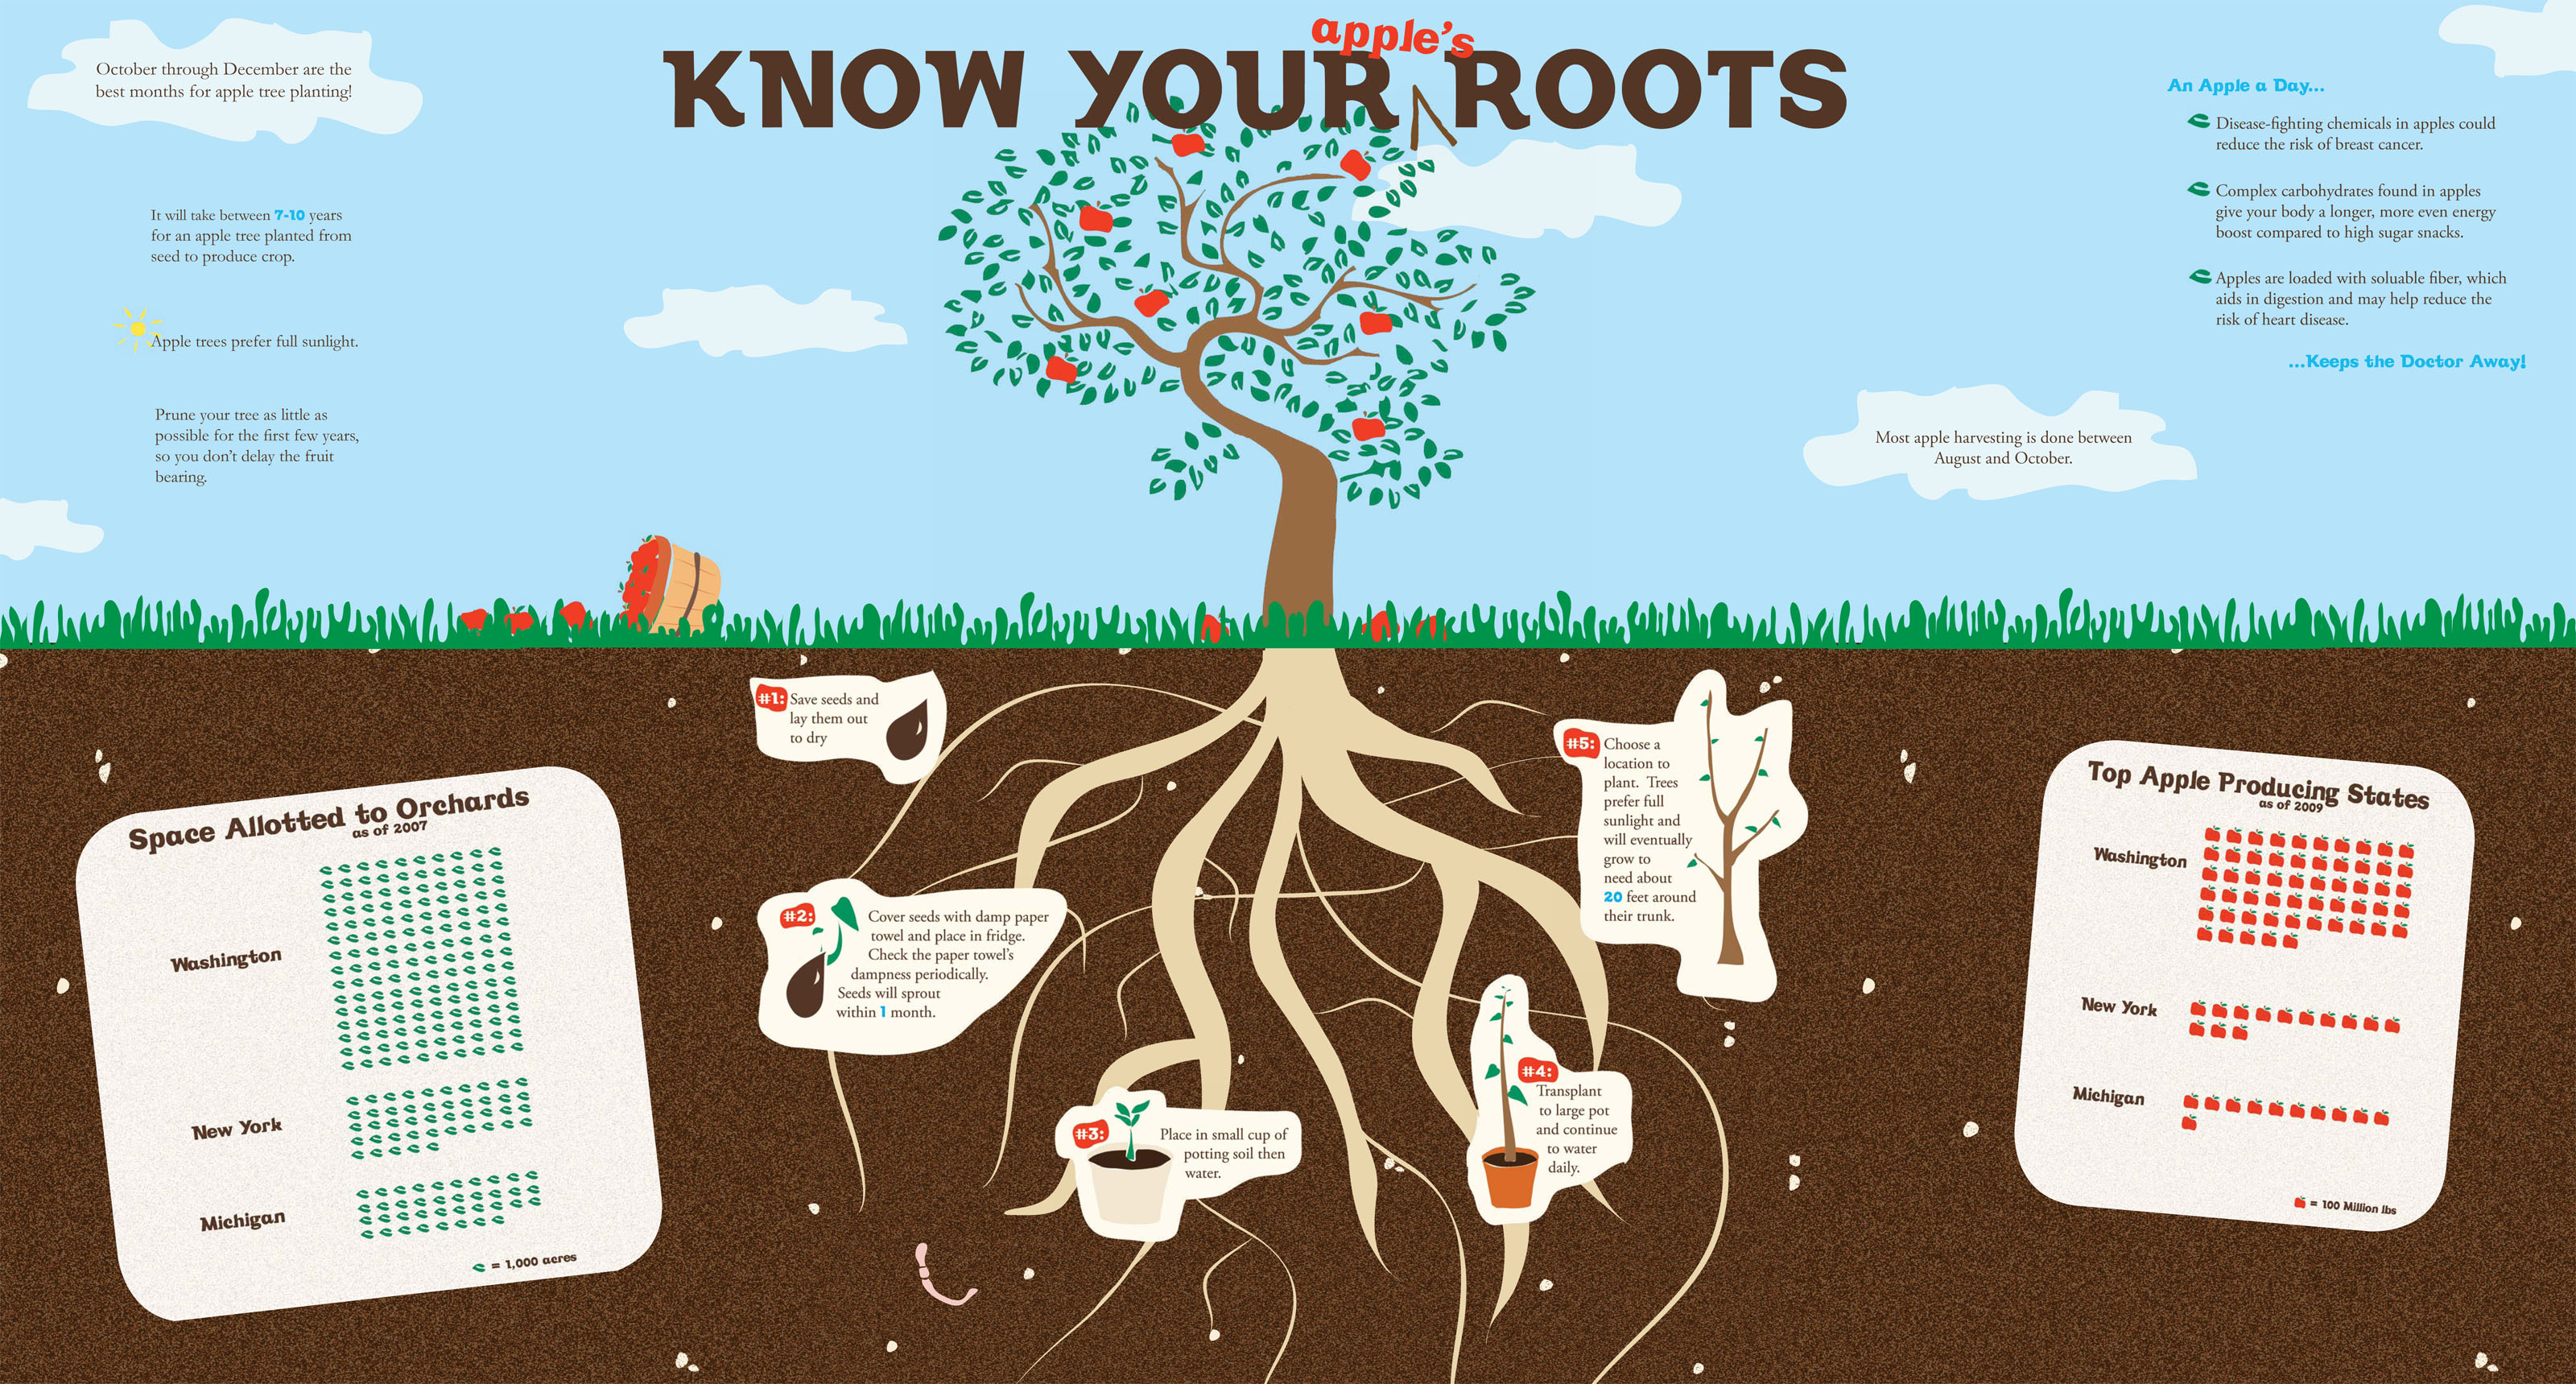 Know your (apple's) roots!